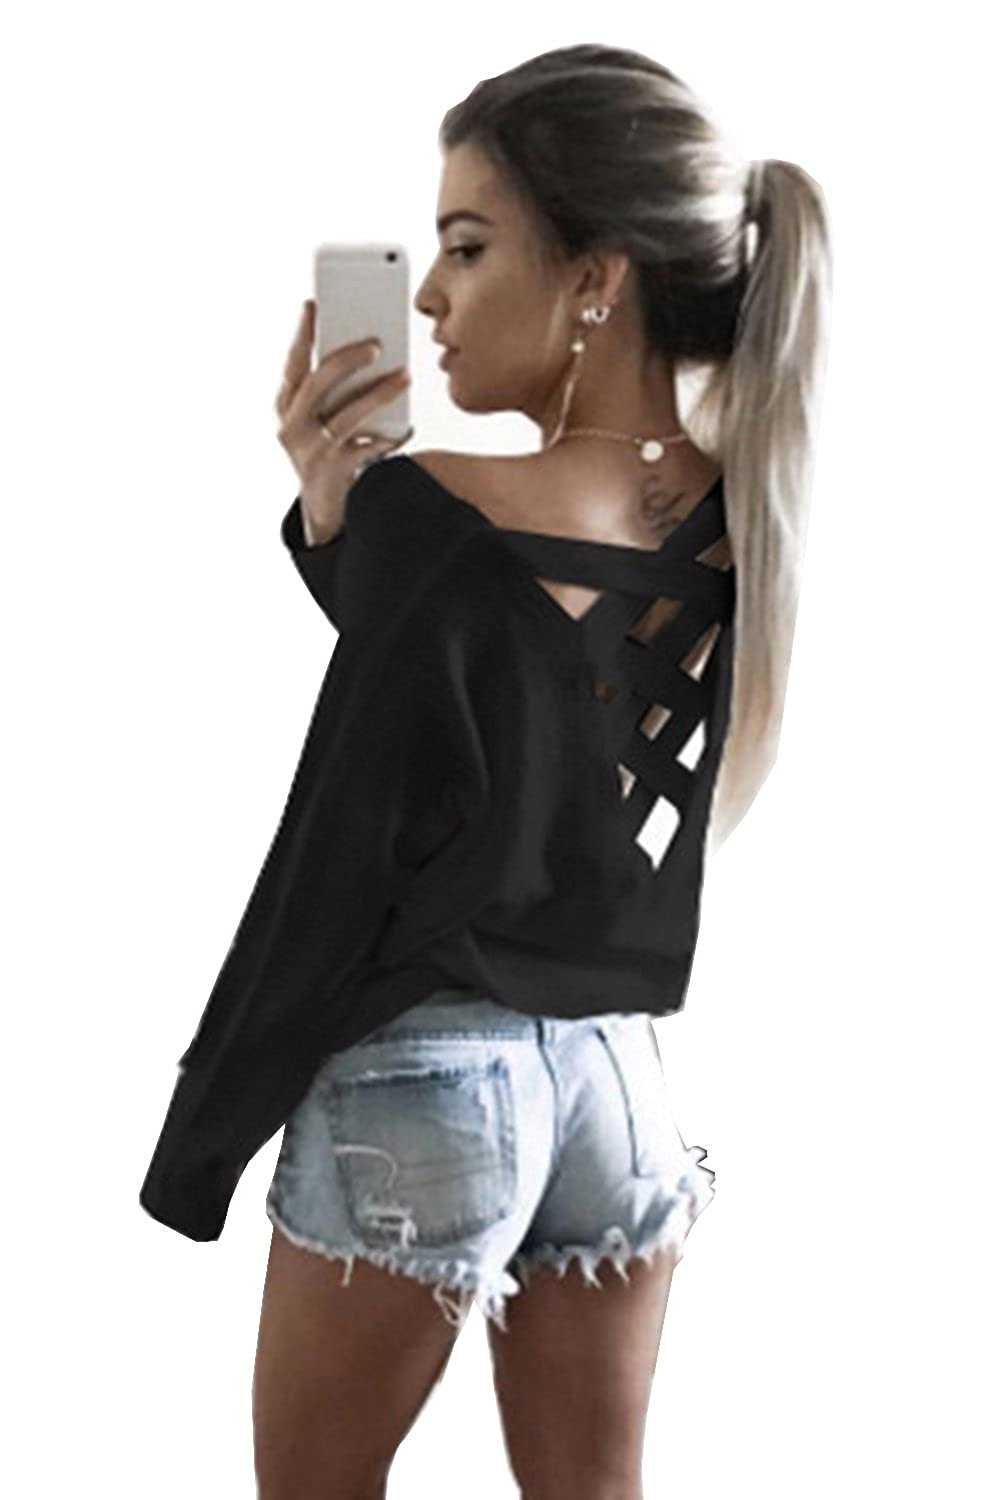 8d9703345 V Neck Backless lace up bandage pullover loose sweatshirt, women long  sleeve shirt,women tops and blouse,V back sweater women, Cut out tops ...